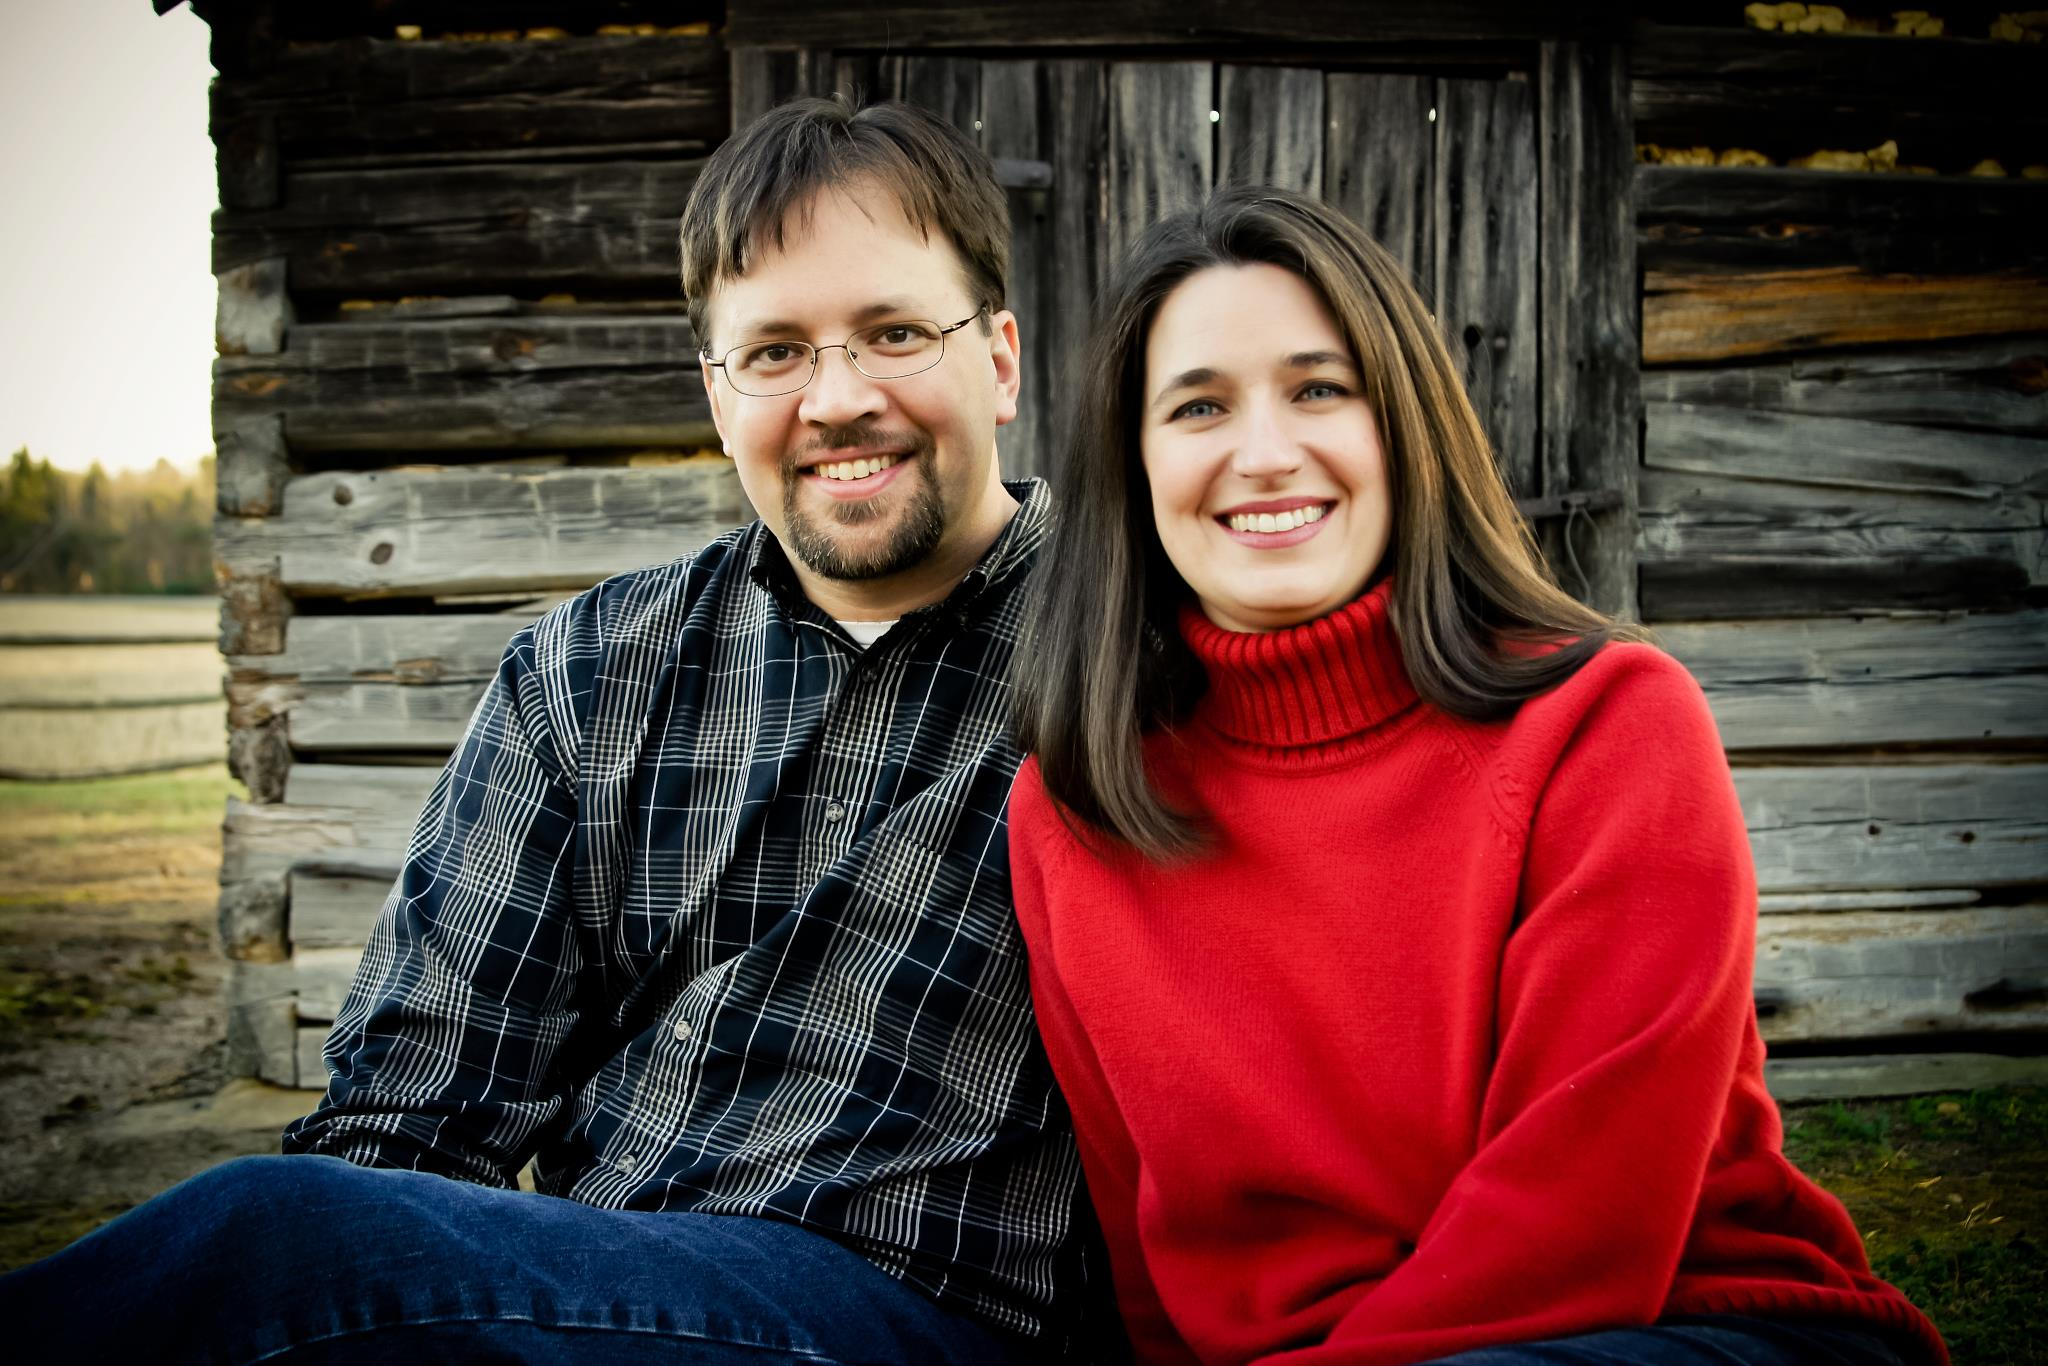 Pastor Kirk and wife Shelly